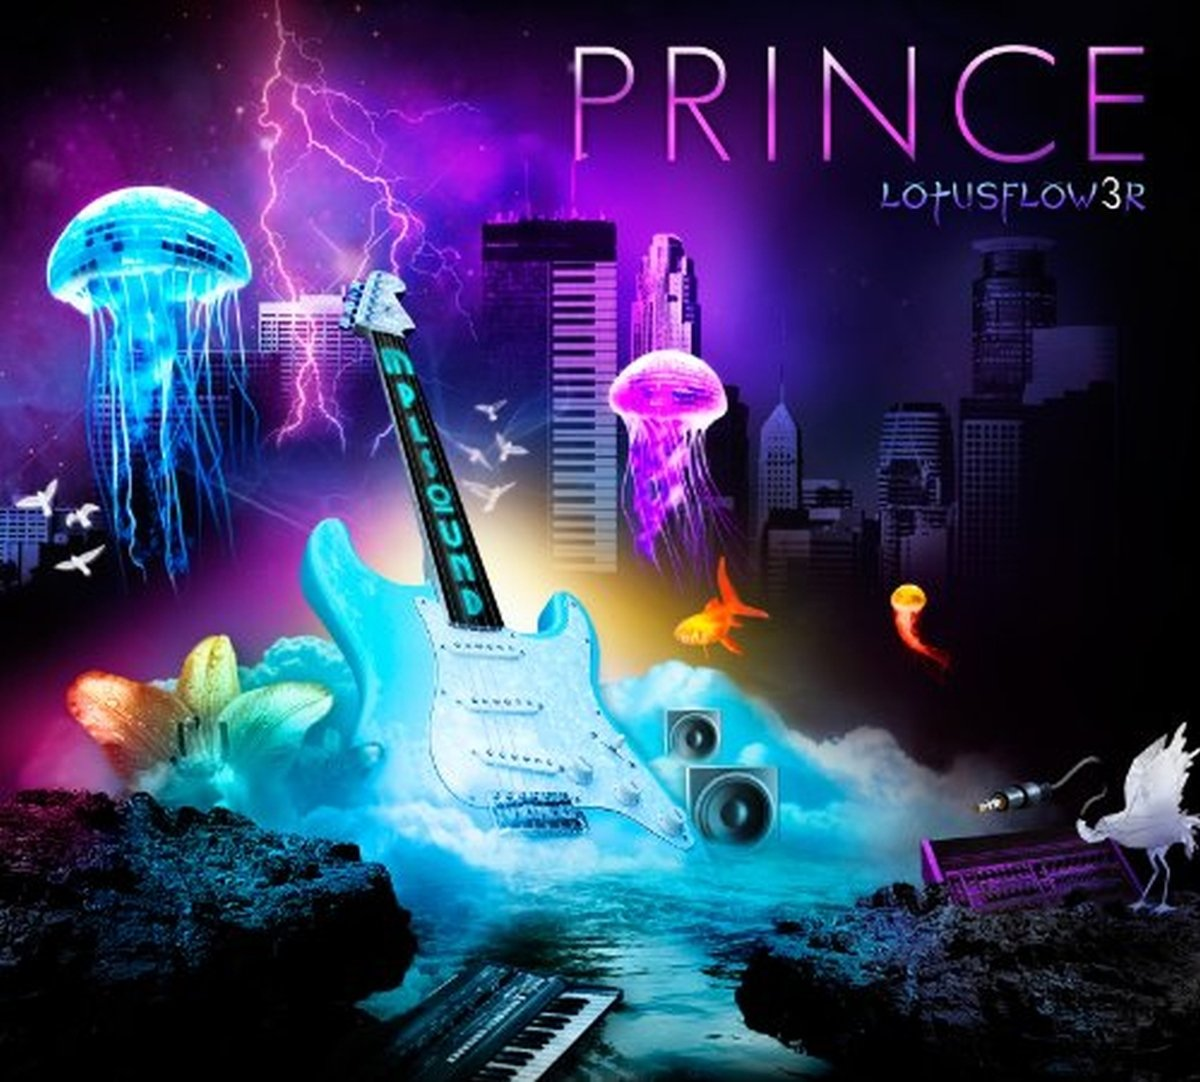 Prince mplsound amazon music izmirmasajfo Image collections